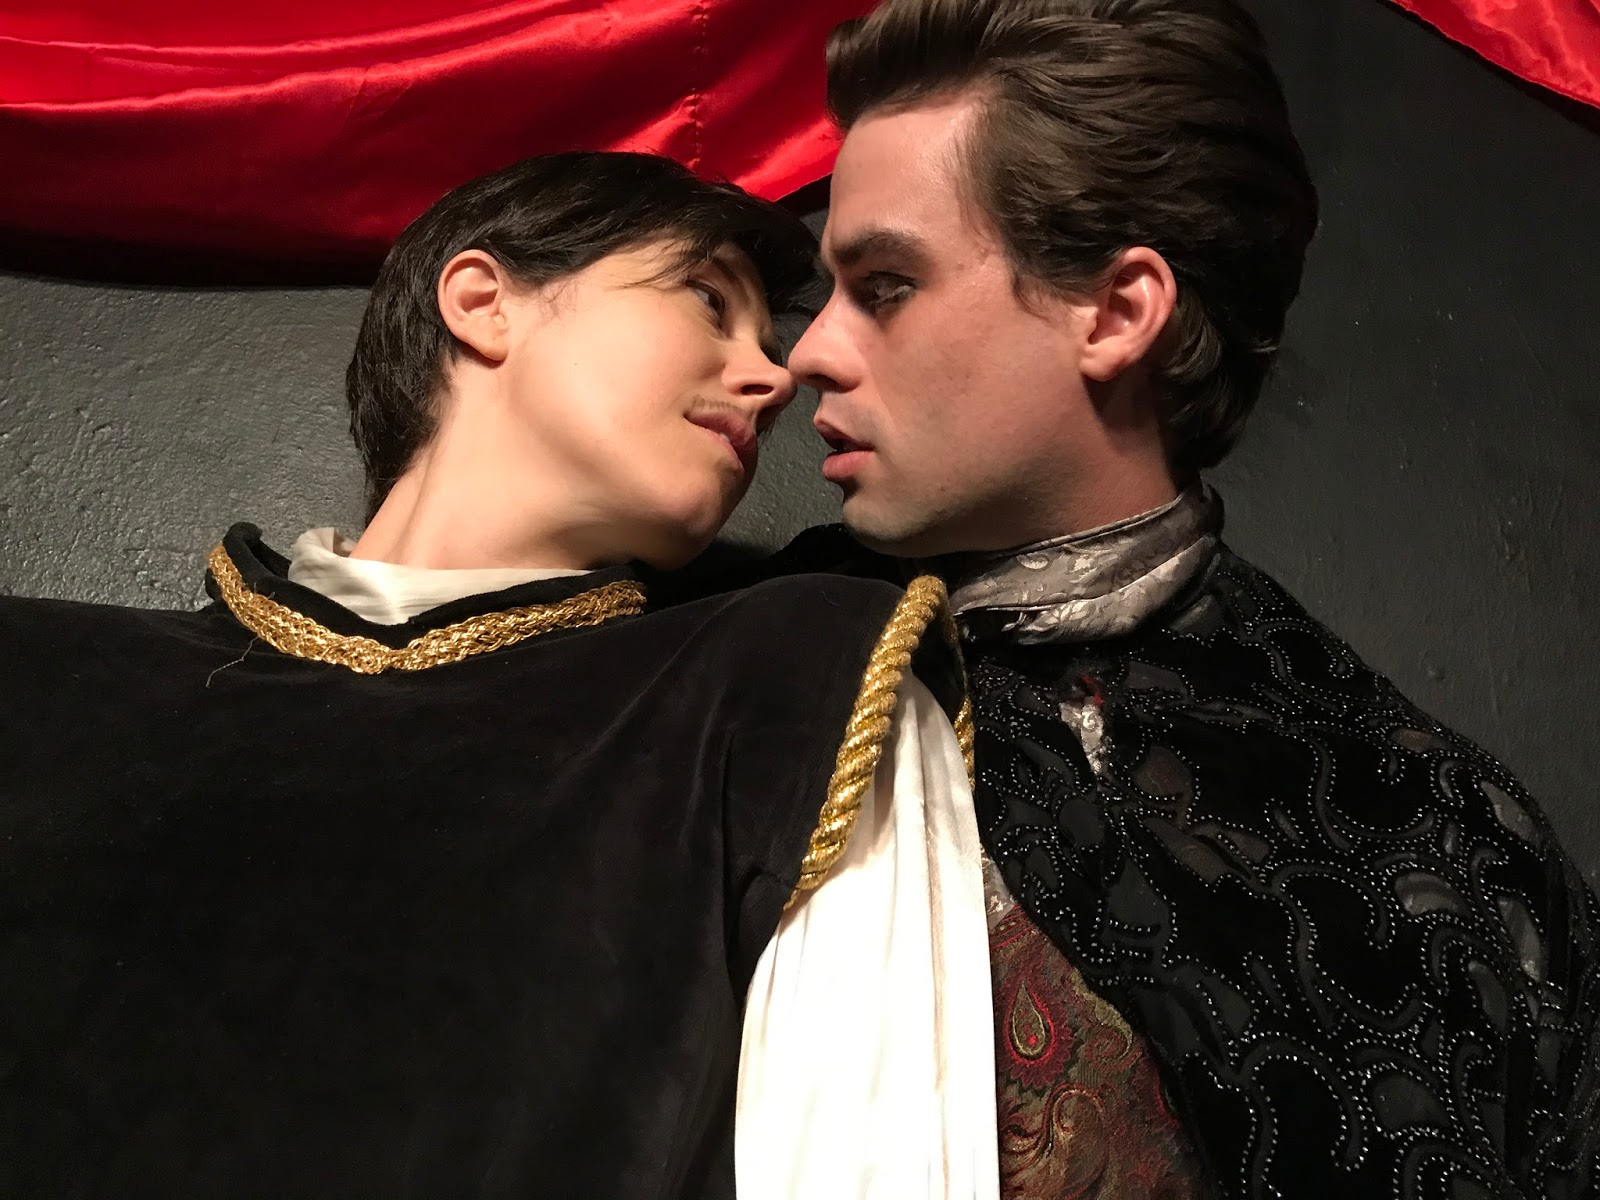 review twelfth night If music be the food of love, get ready to lick your lips: christopher luscombe's rsc production of shakespeare's melancholy comedy sounds — and looks — su.